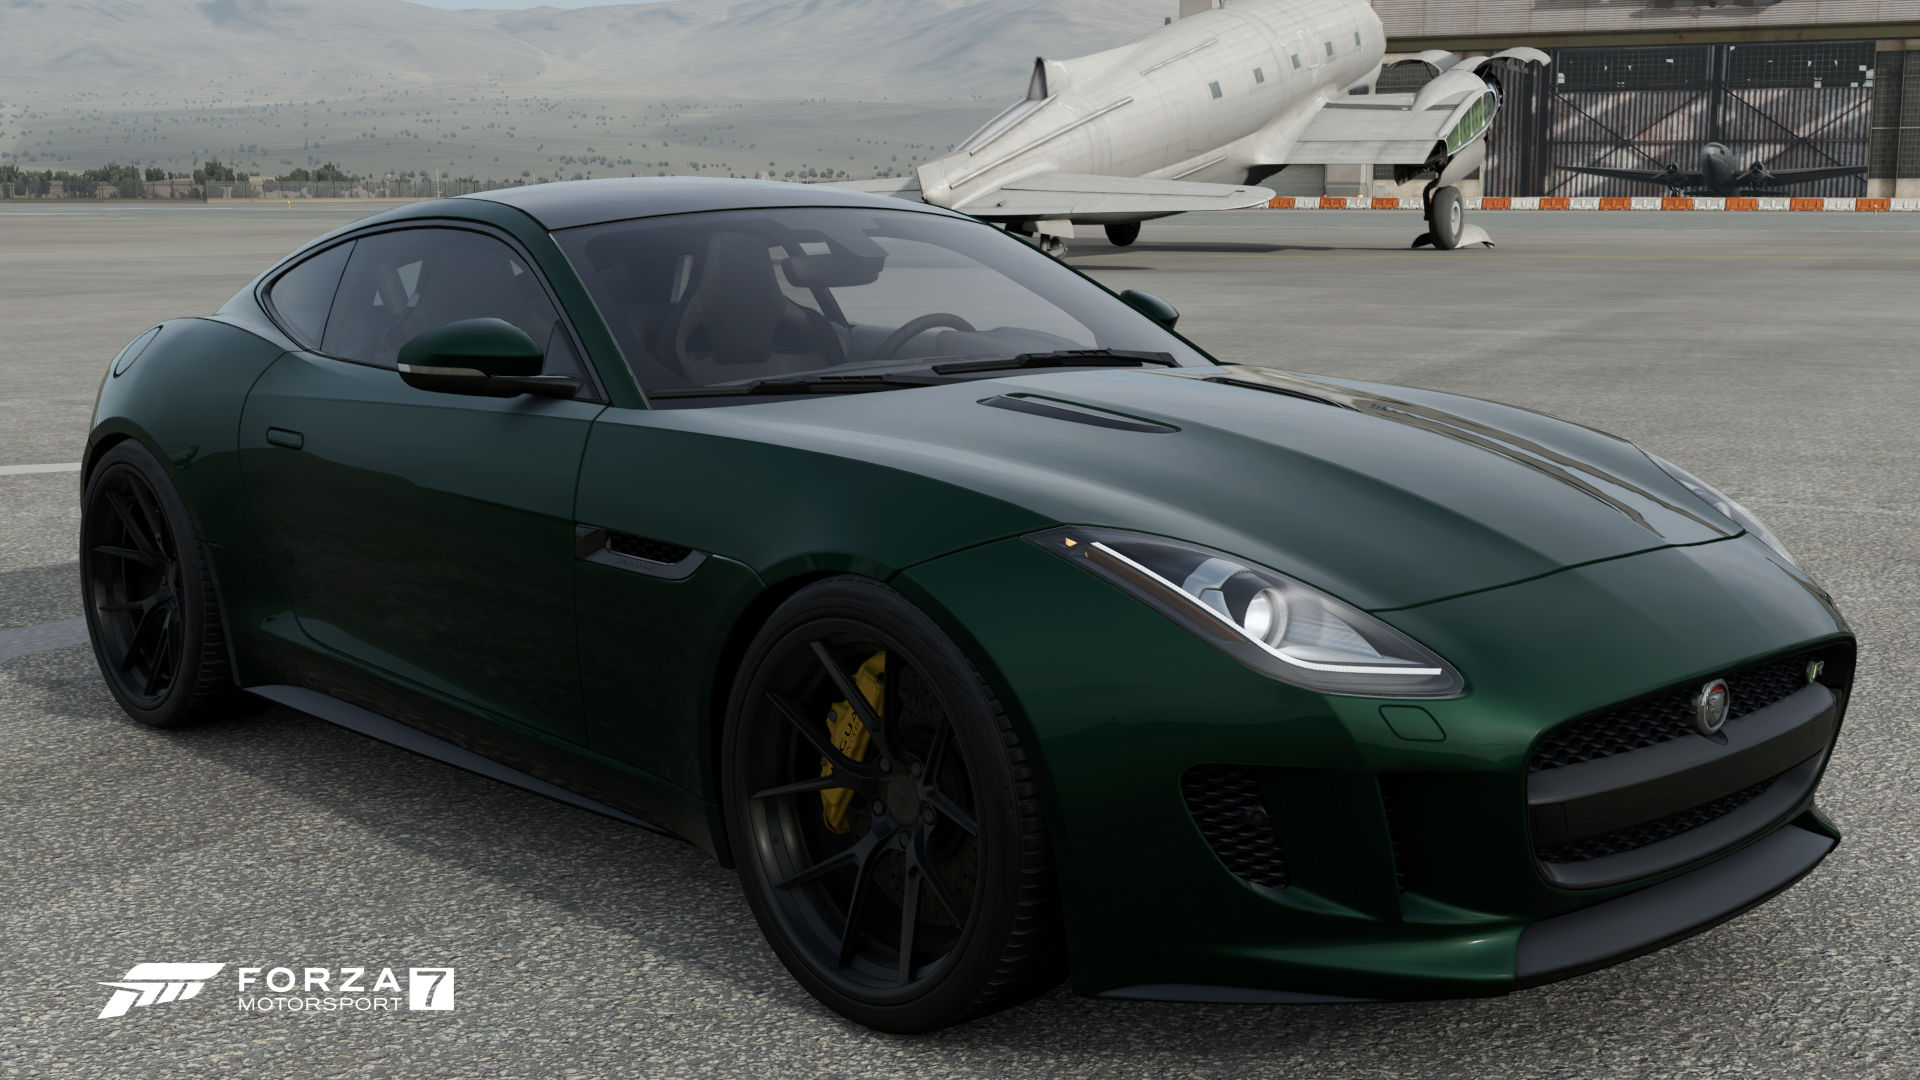 The 2015 Jaguar F Type R Coupe Fast U0026 Furious Edition In Forza Motorsport 7